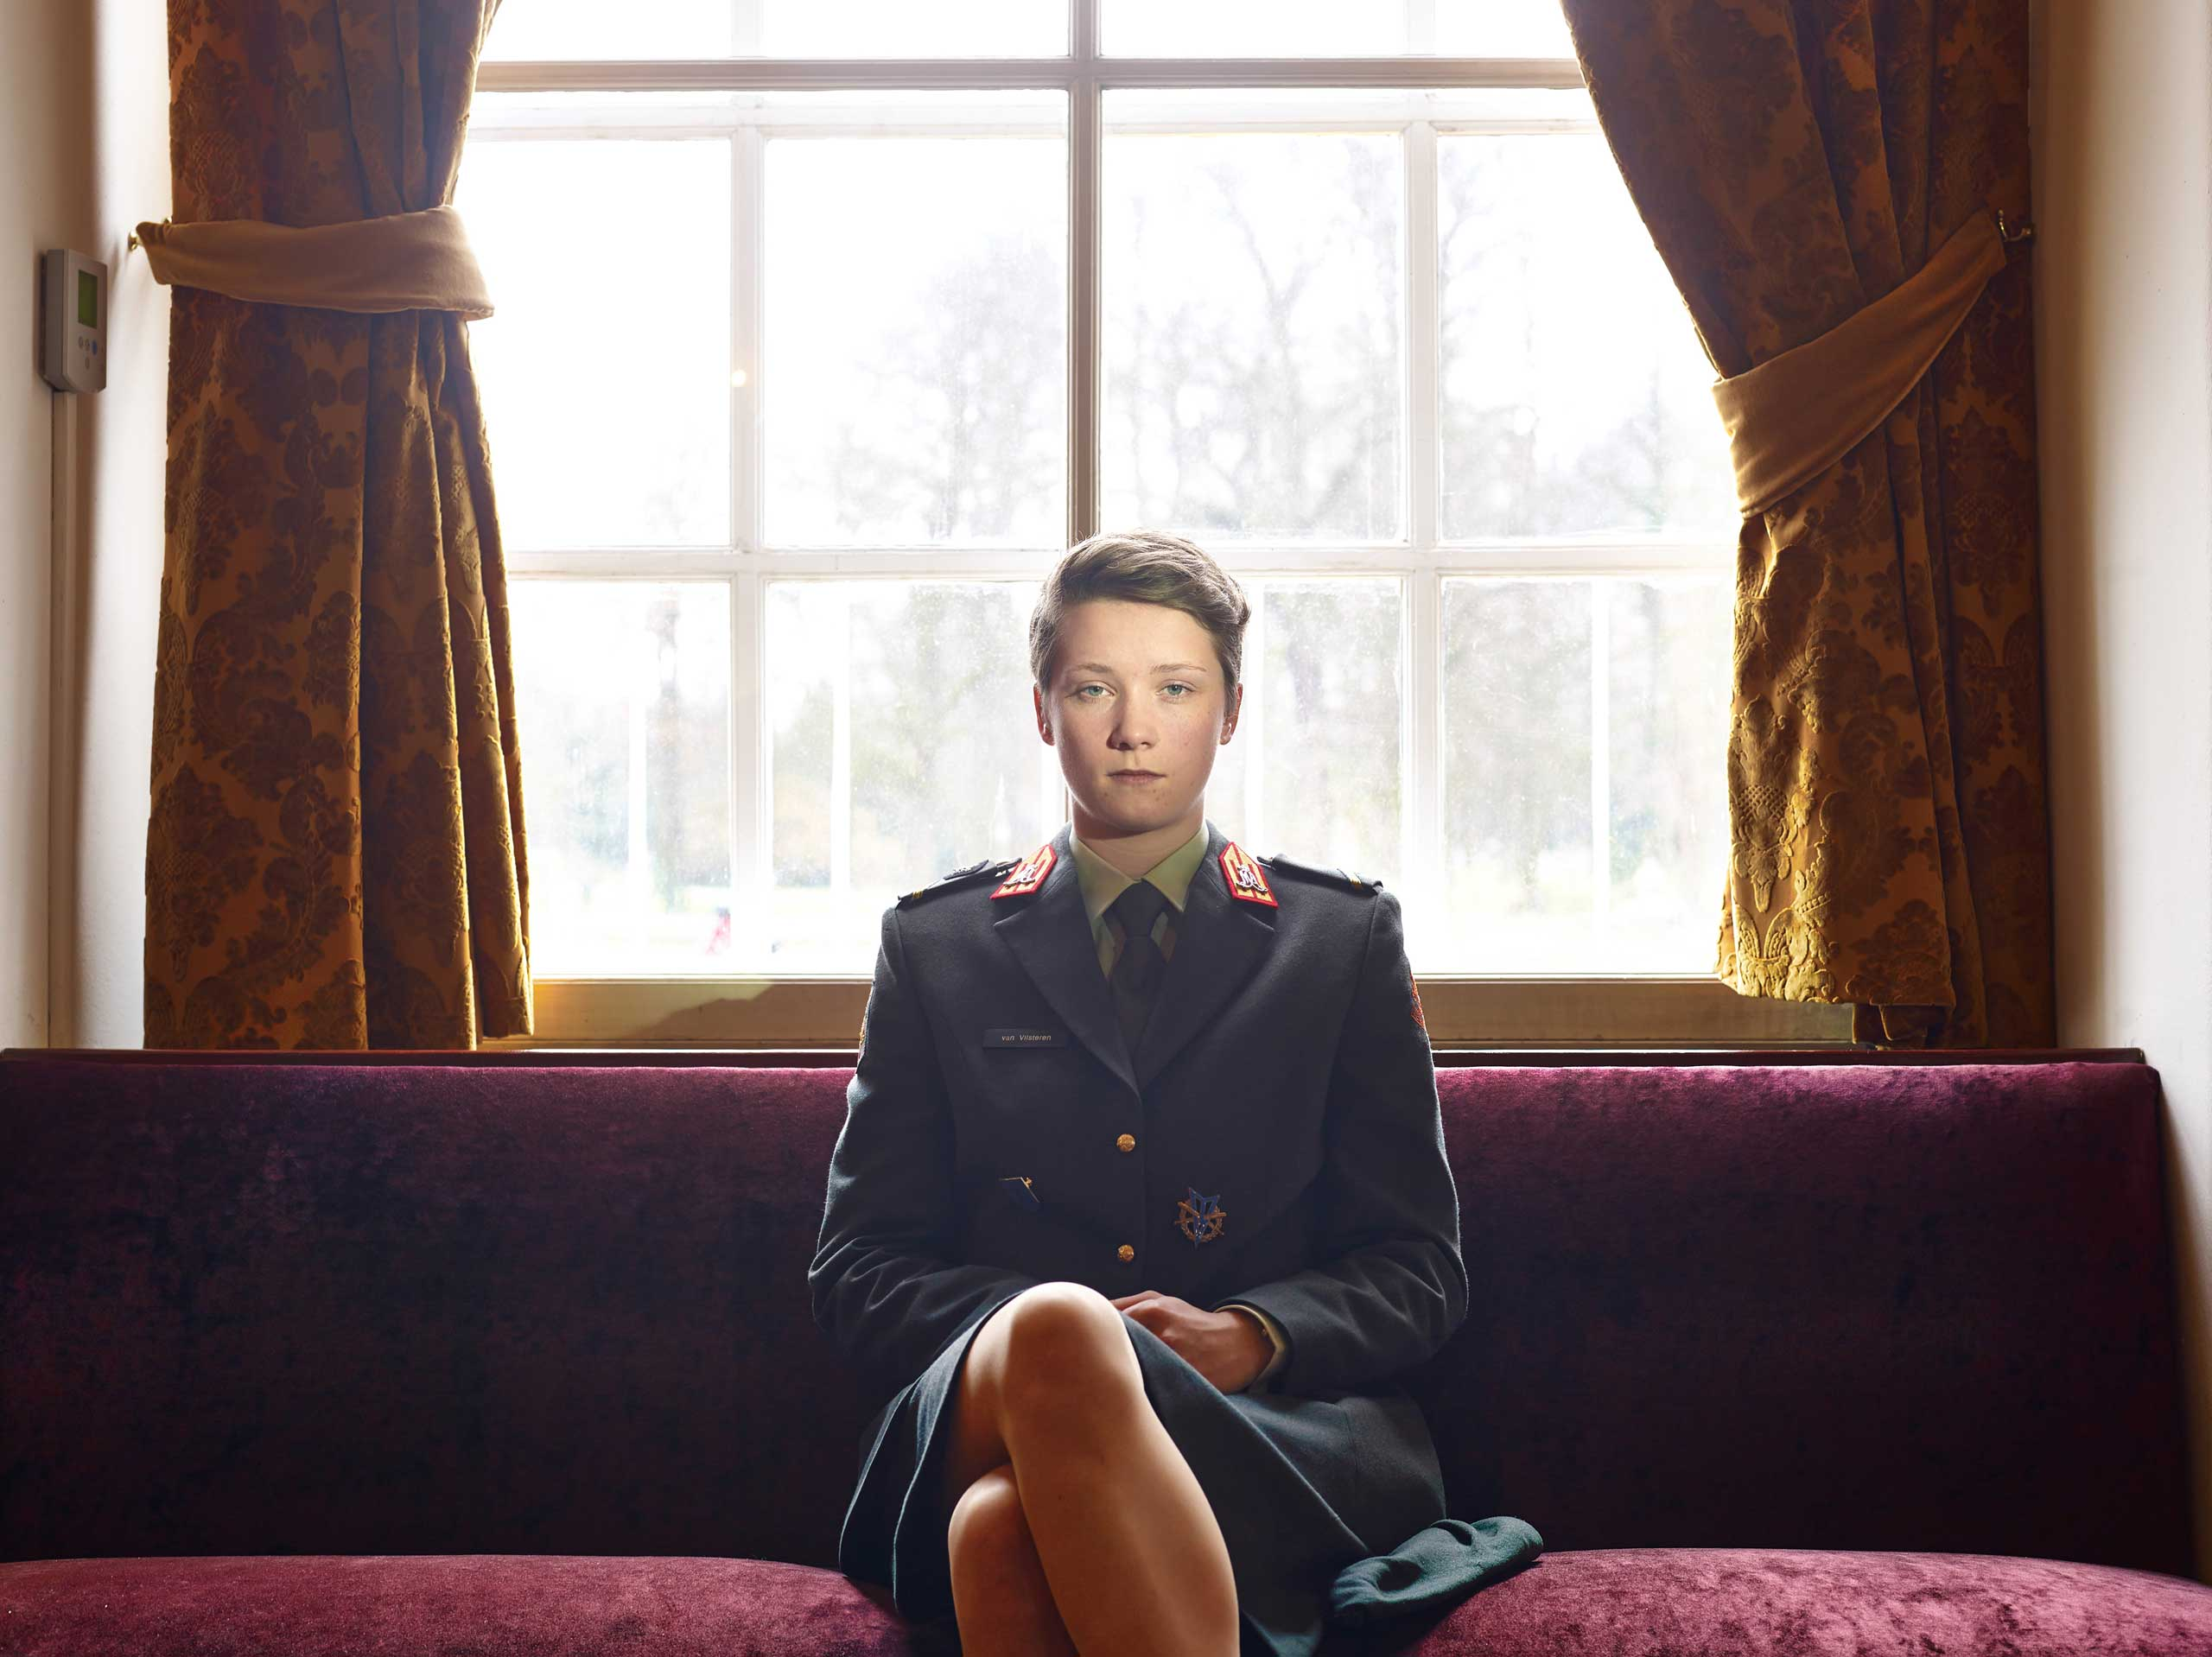 <b>Third Prize Portraits Category, Stories</b>Cadet in the Koninklijke Militaire Academie, Breda, The Netherlands